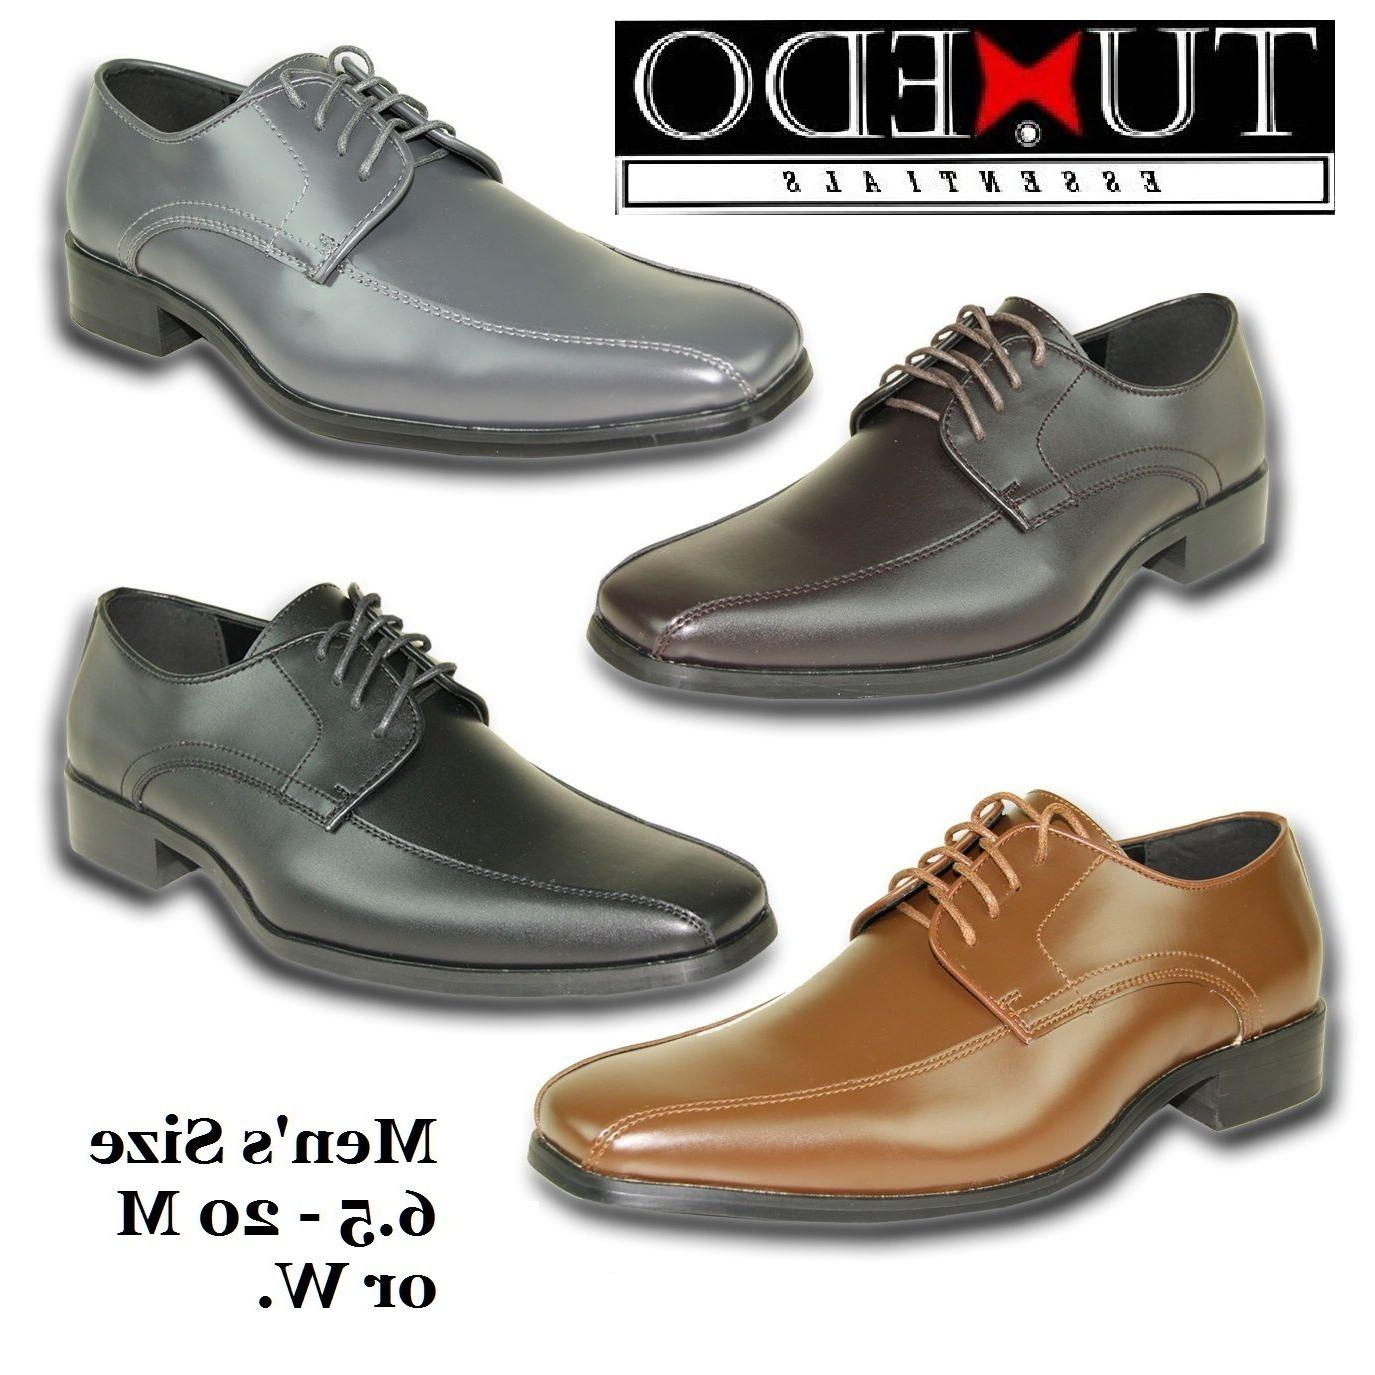 new mens dress shoes size classic oxford